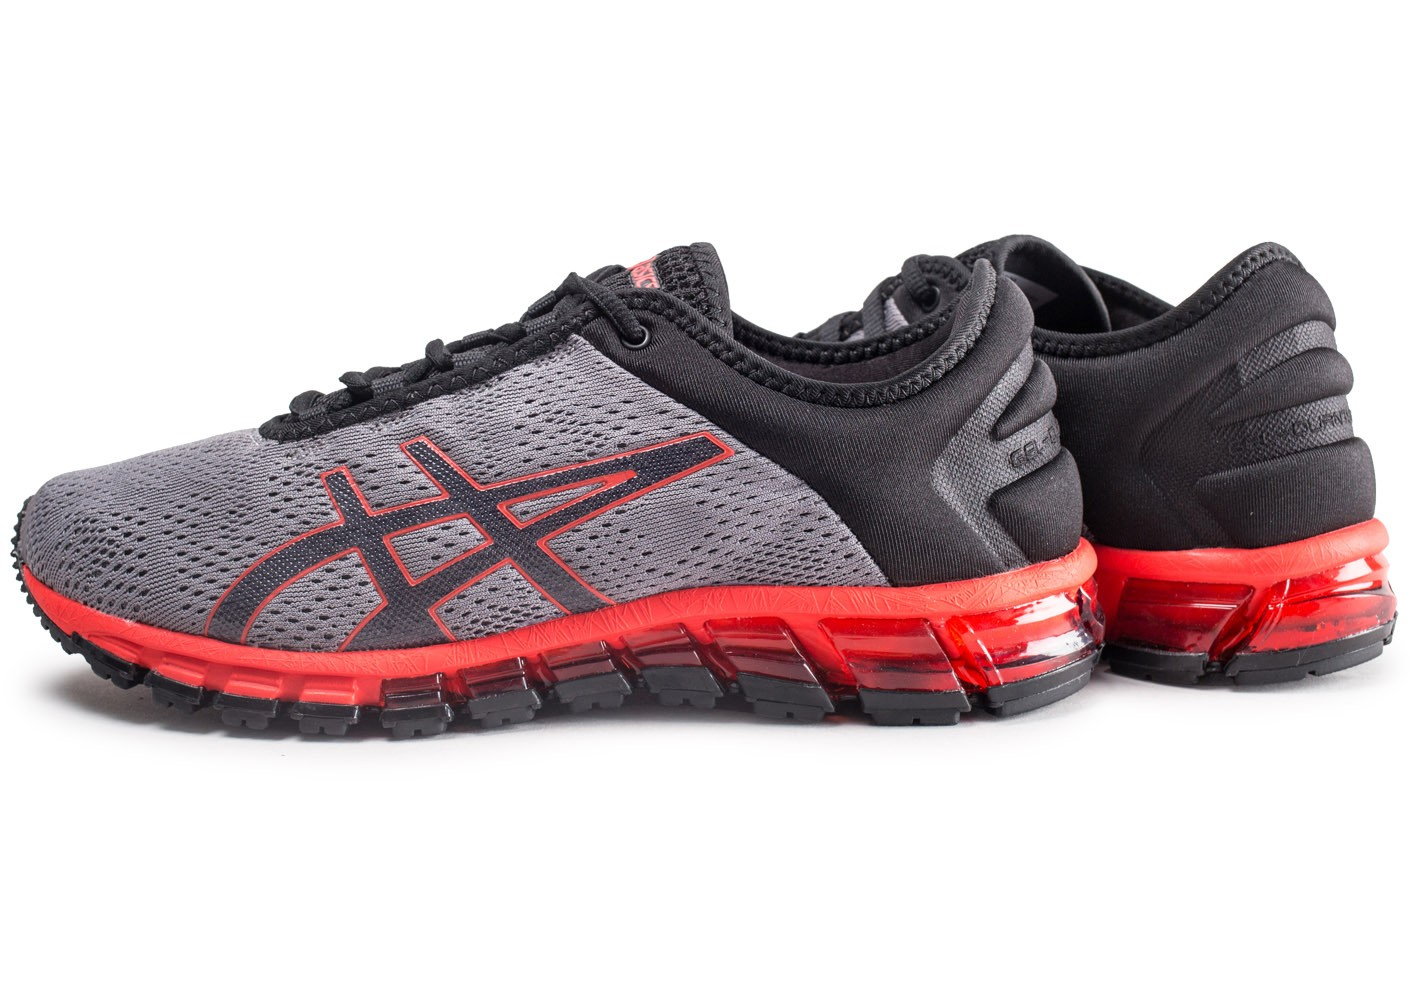 Baskets Asics Grises Baskets Grises Détail Rouge Rouge